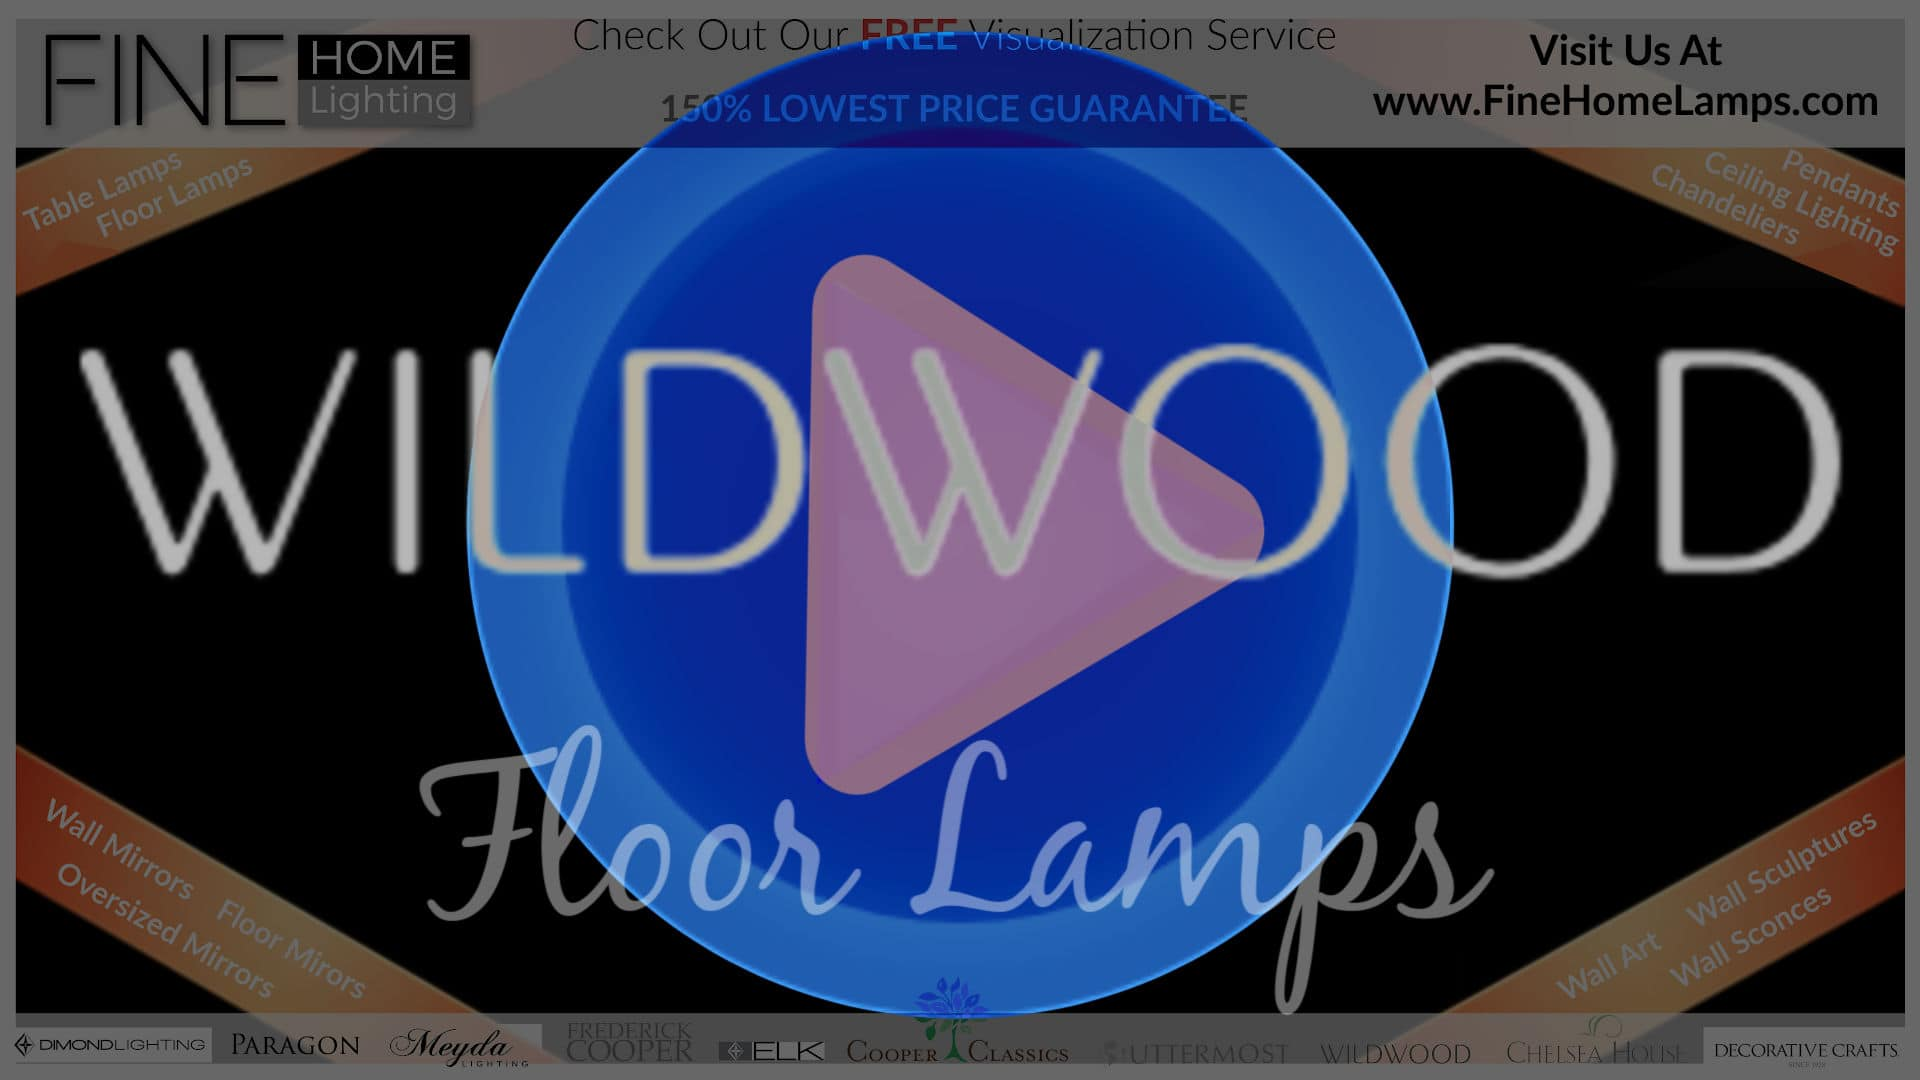 Wildwood-Floor-Lamps-Thanks-for-watching-this-video-Get-an-additional-15-percent-off-your-next-purchase-Use-Coupon-Code-VIDEO-2